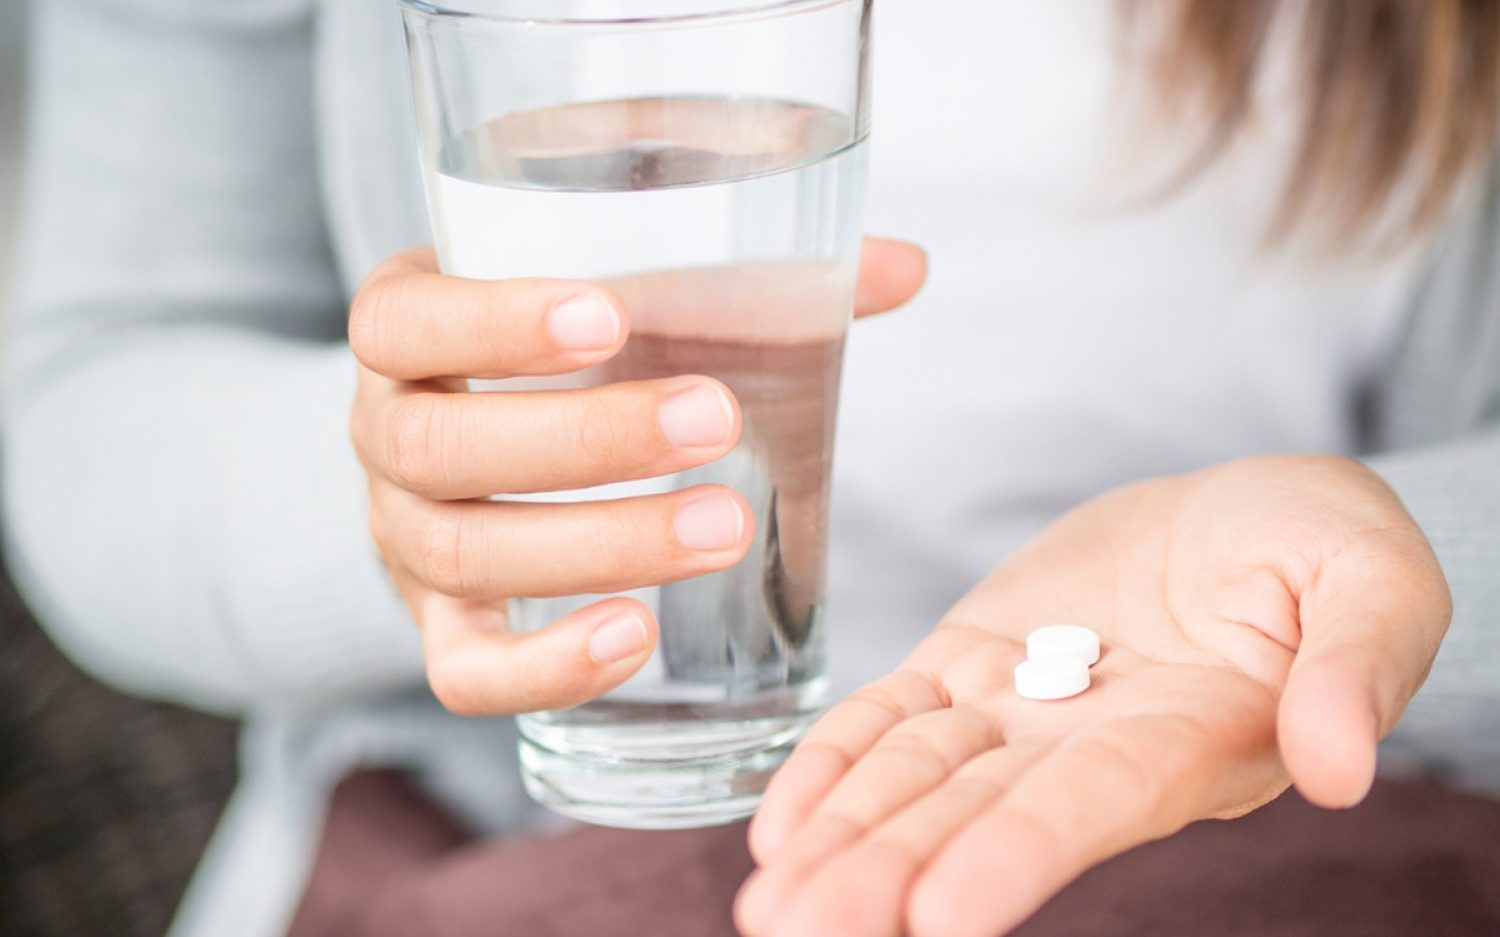 Requests to online abortion pill mill go up